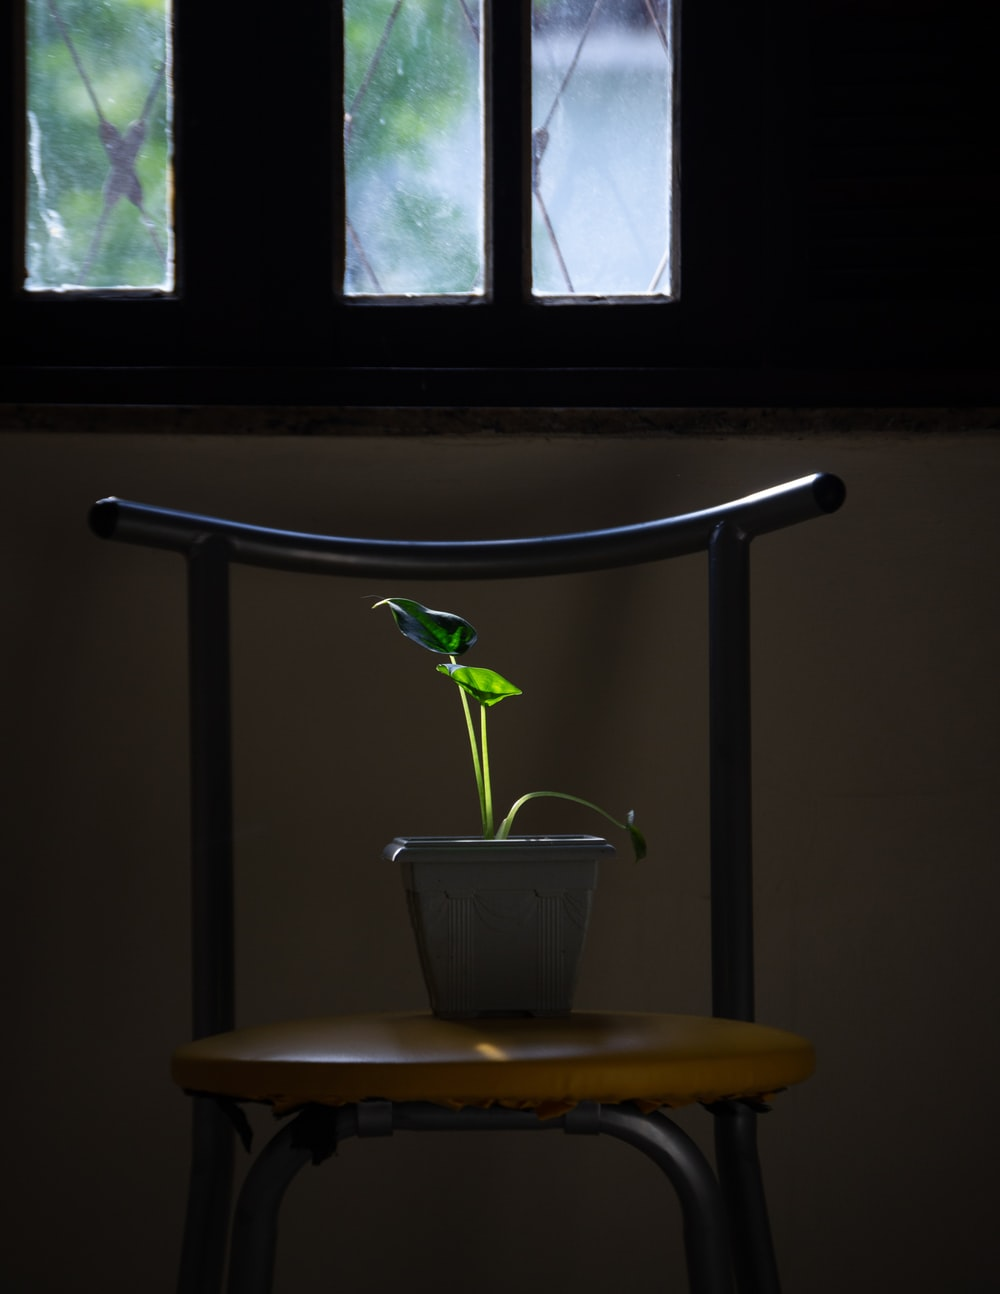 peace lily in pot on chair